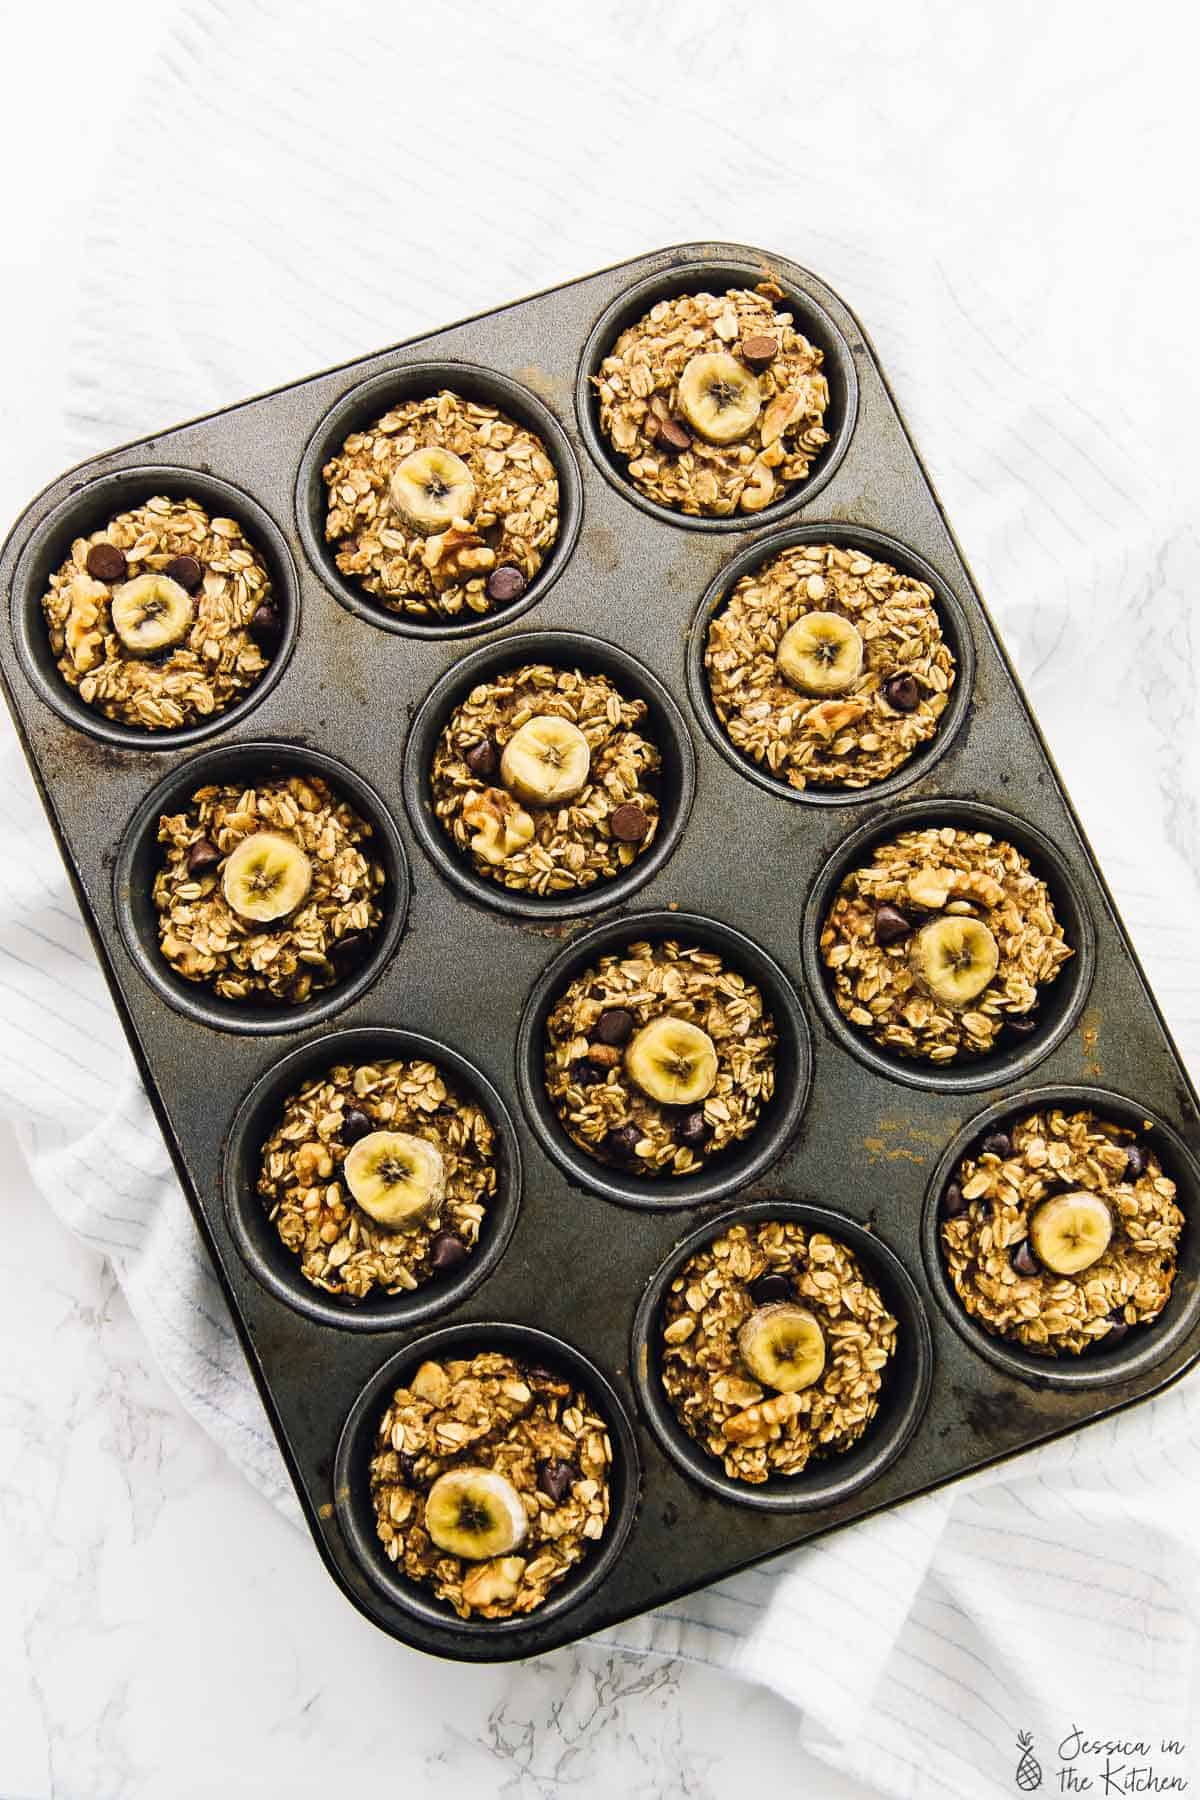 Overhead view of baked banana bread oatmeal cups in a muffin mold.